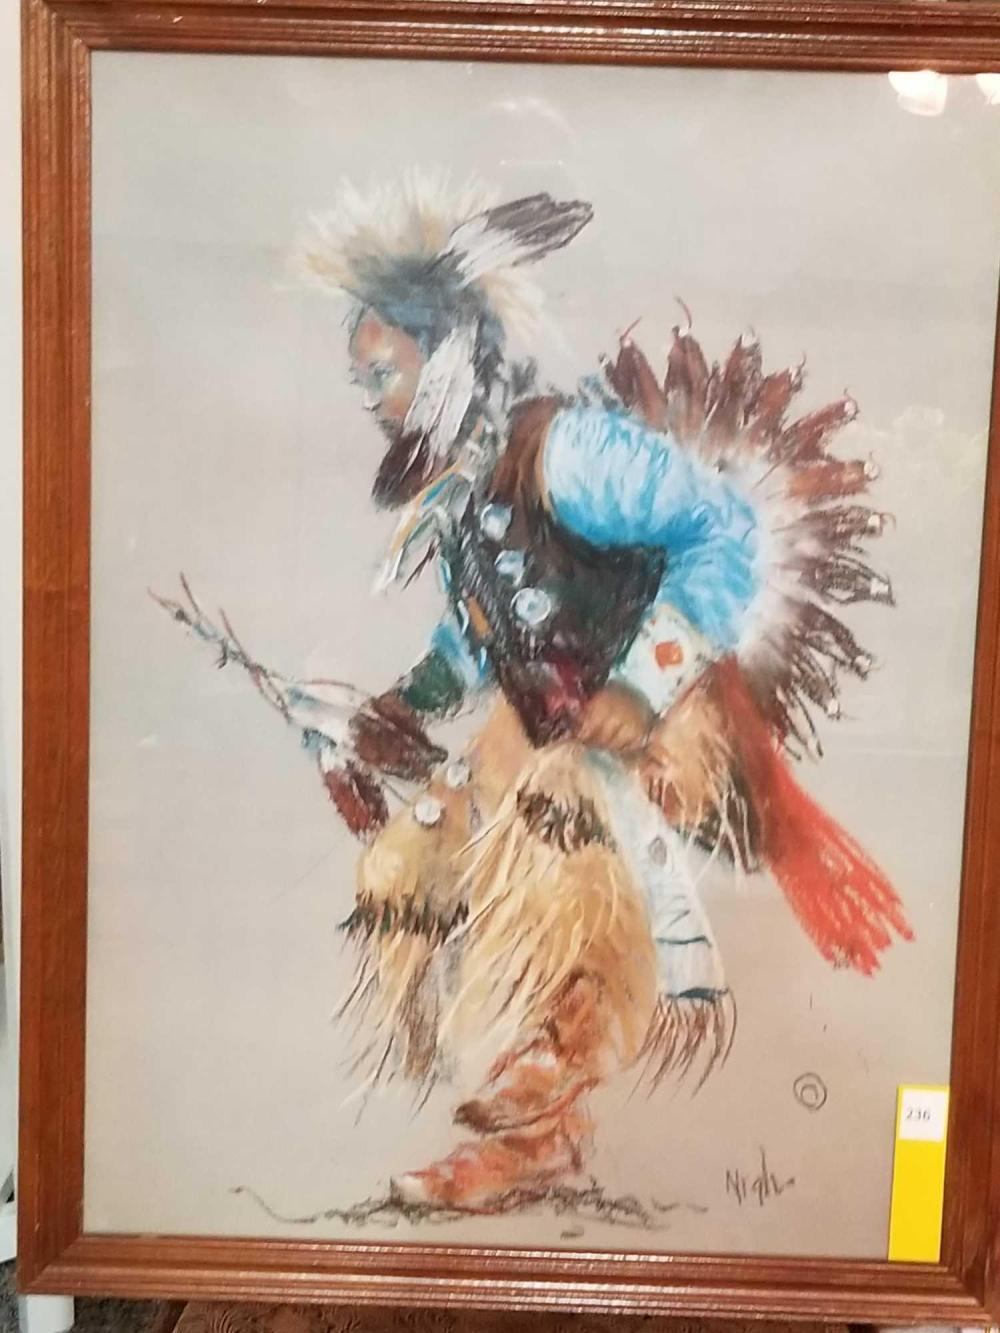 Native American Indian Dance Signed Framed Print w/no matte under glass 26x20